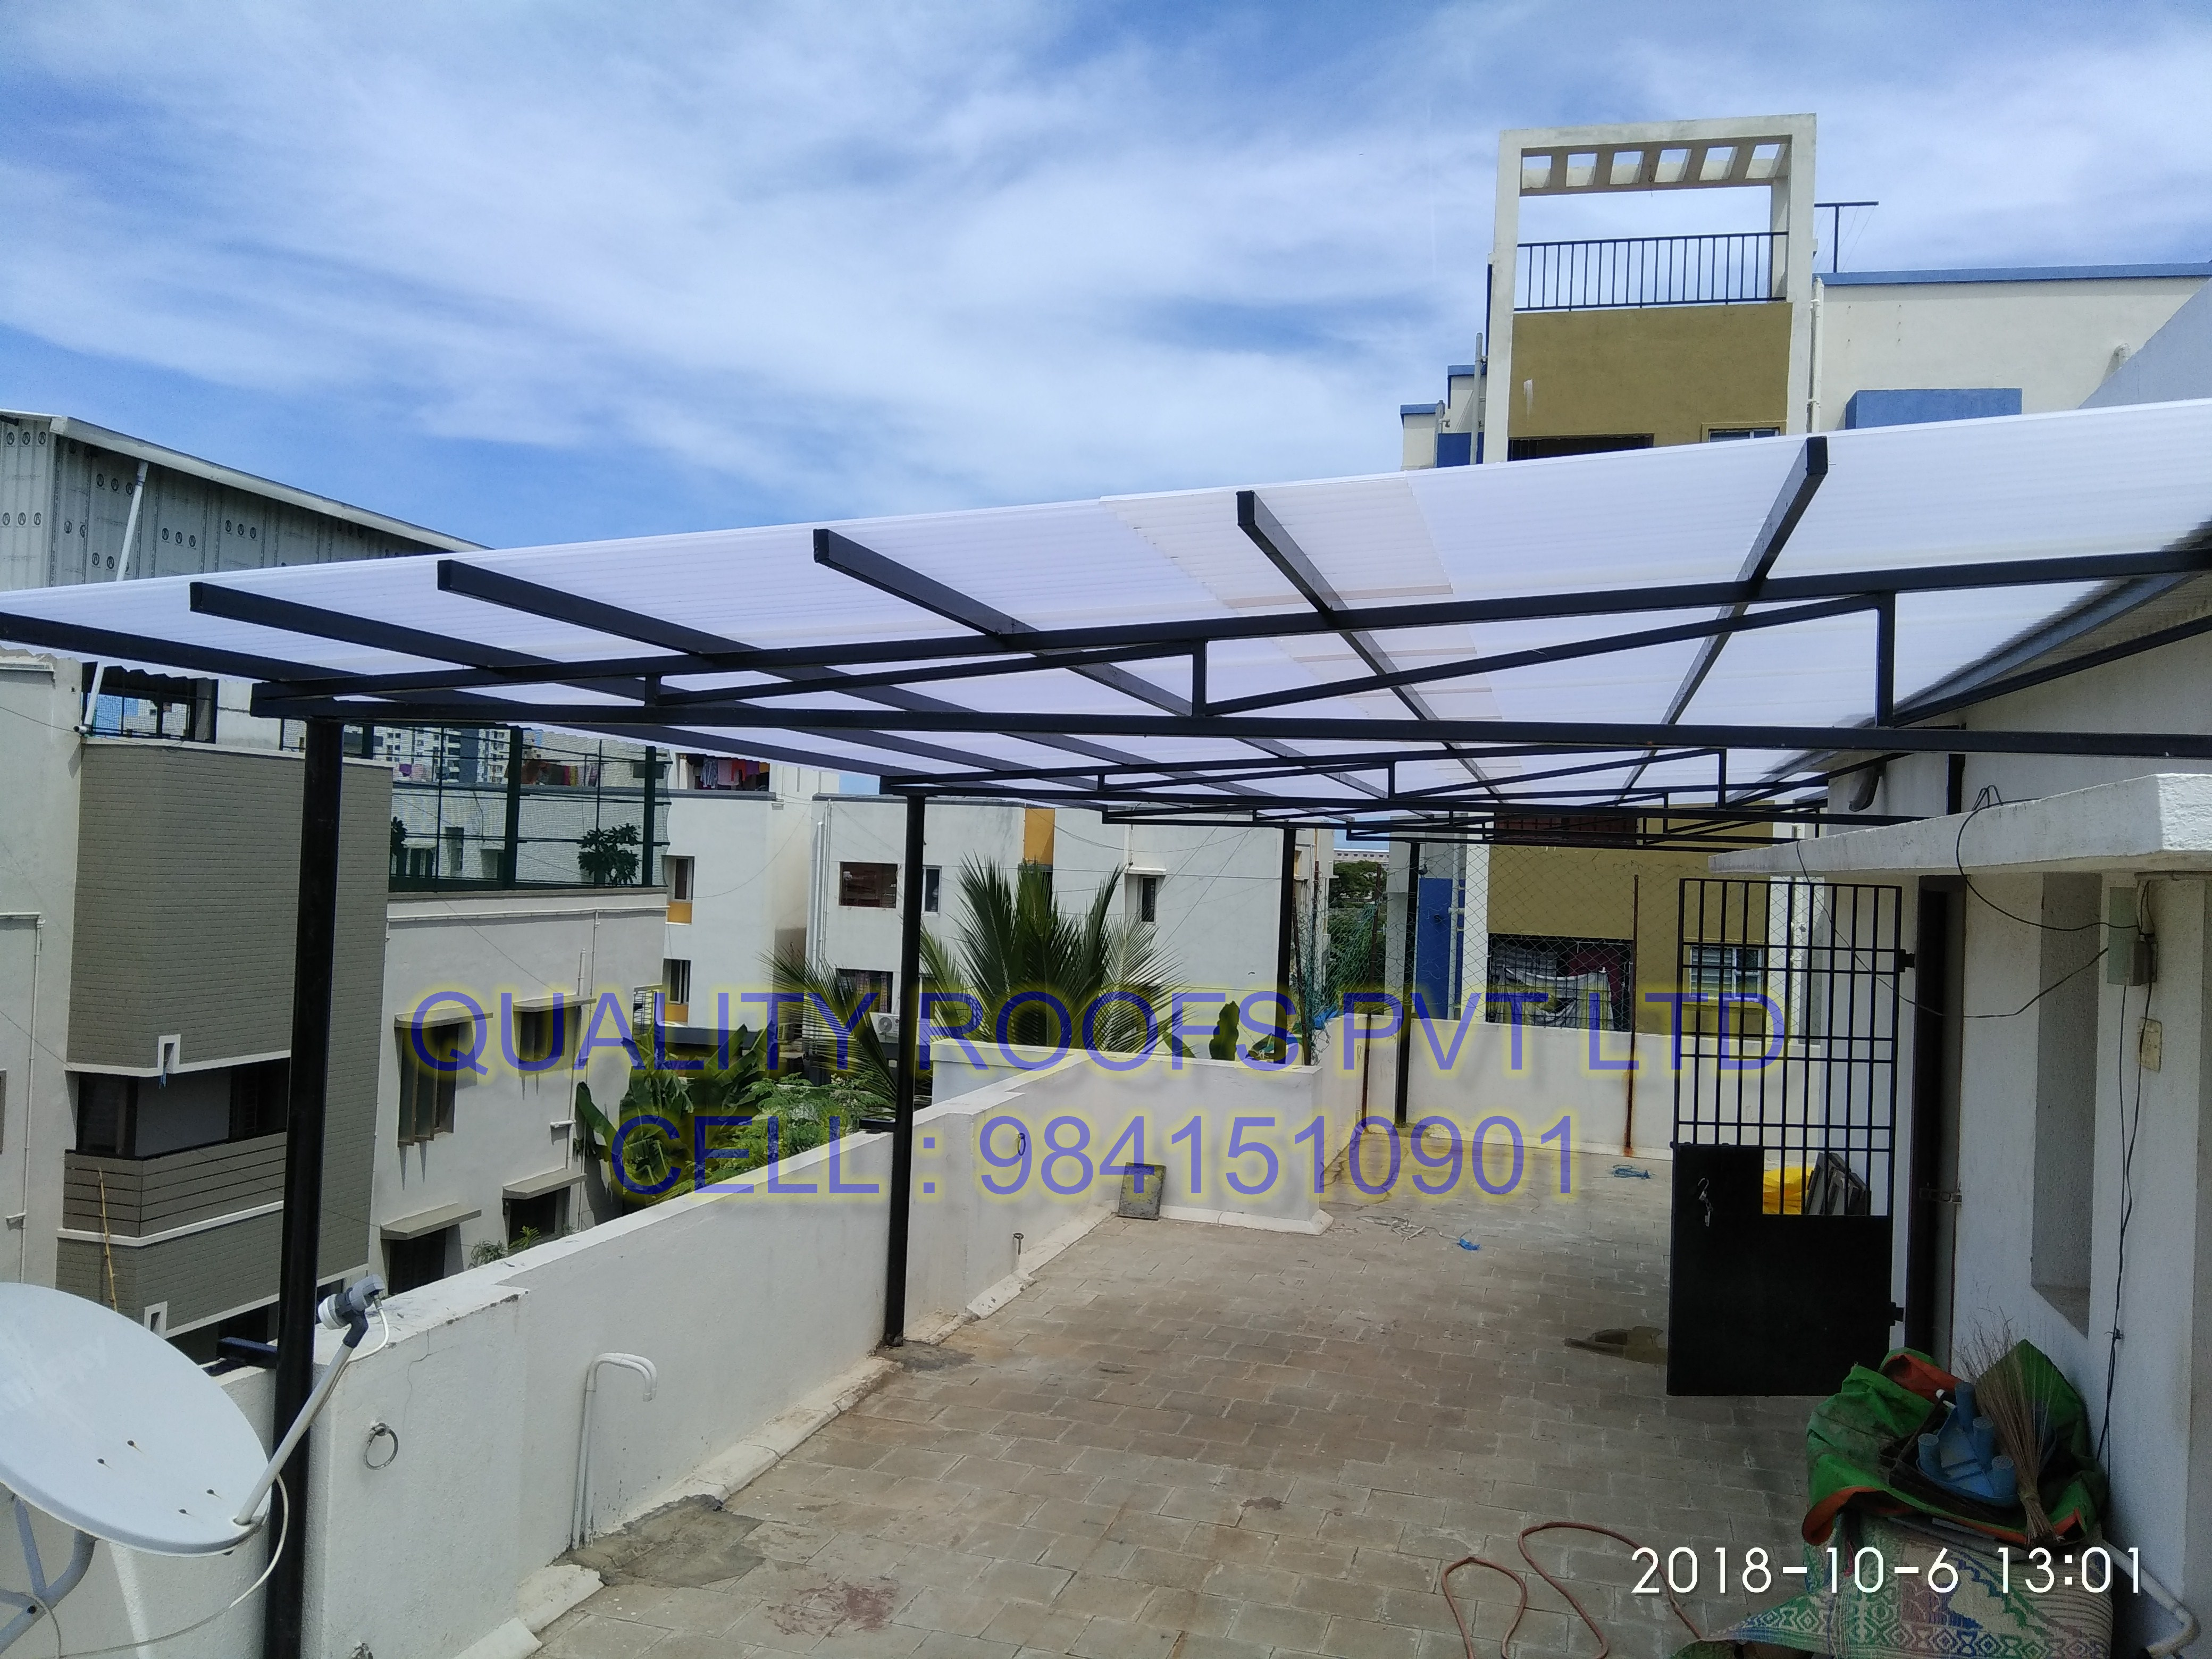 Quality Roofs Pvt Ltd, Metal Roofing Services In Chennai, Roofing Shed Work In Chennai, Roofing Sheet Installation In Chennai, Metal Roofing Chennai, Polycarbonate Roofing Chennai